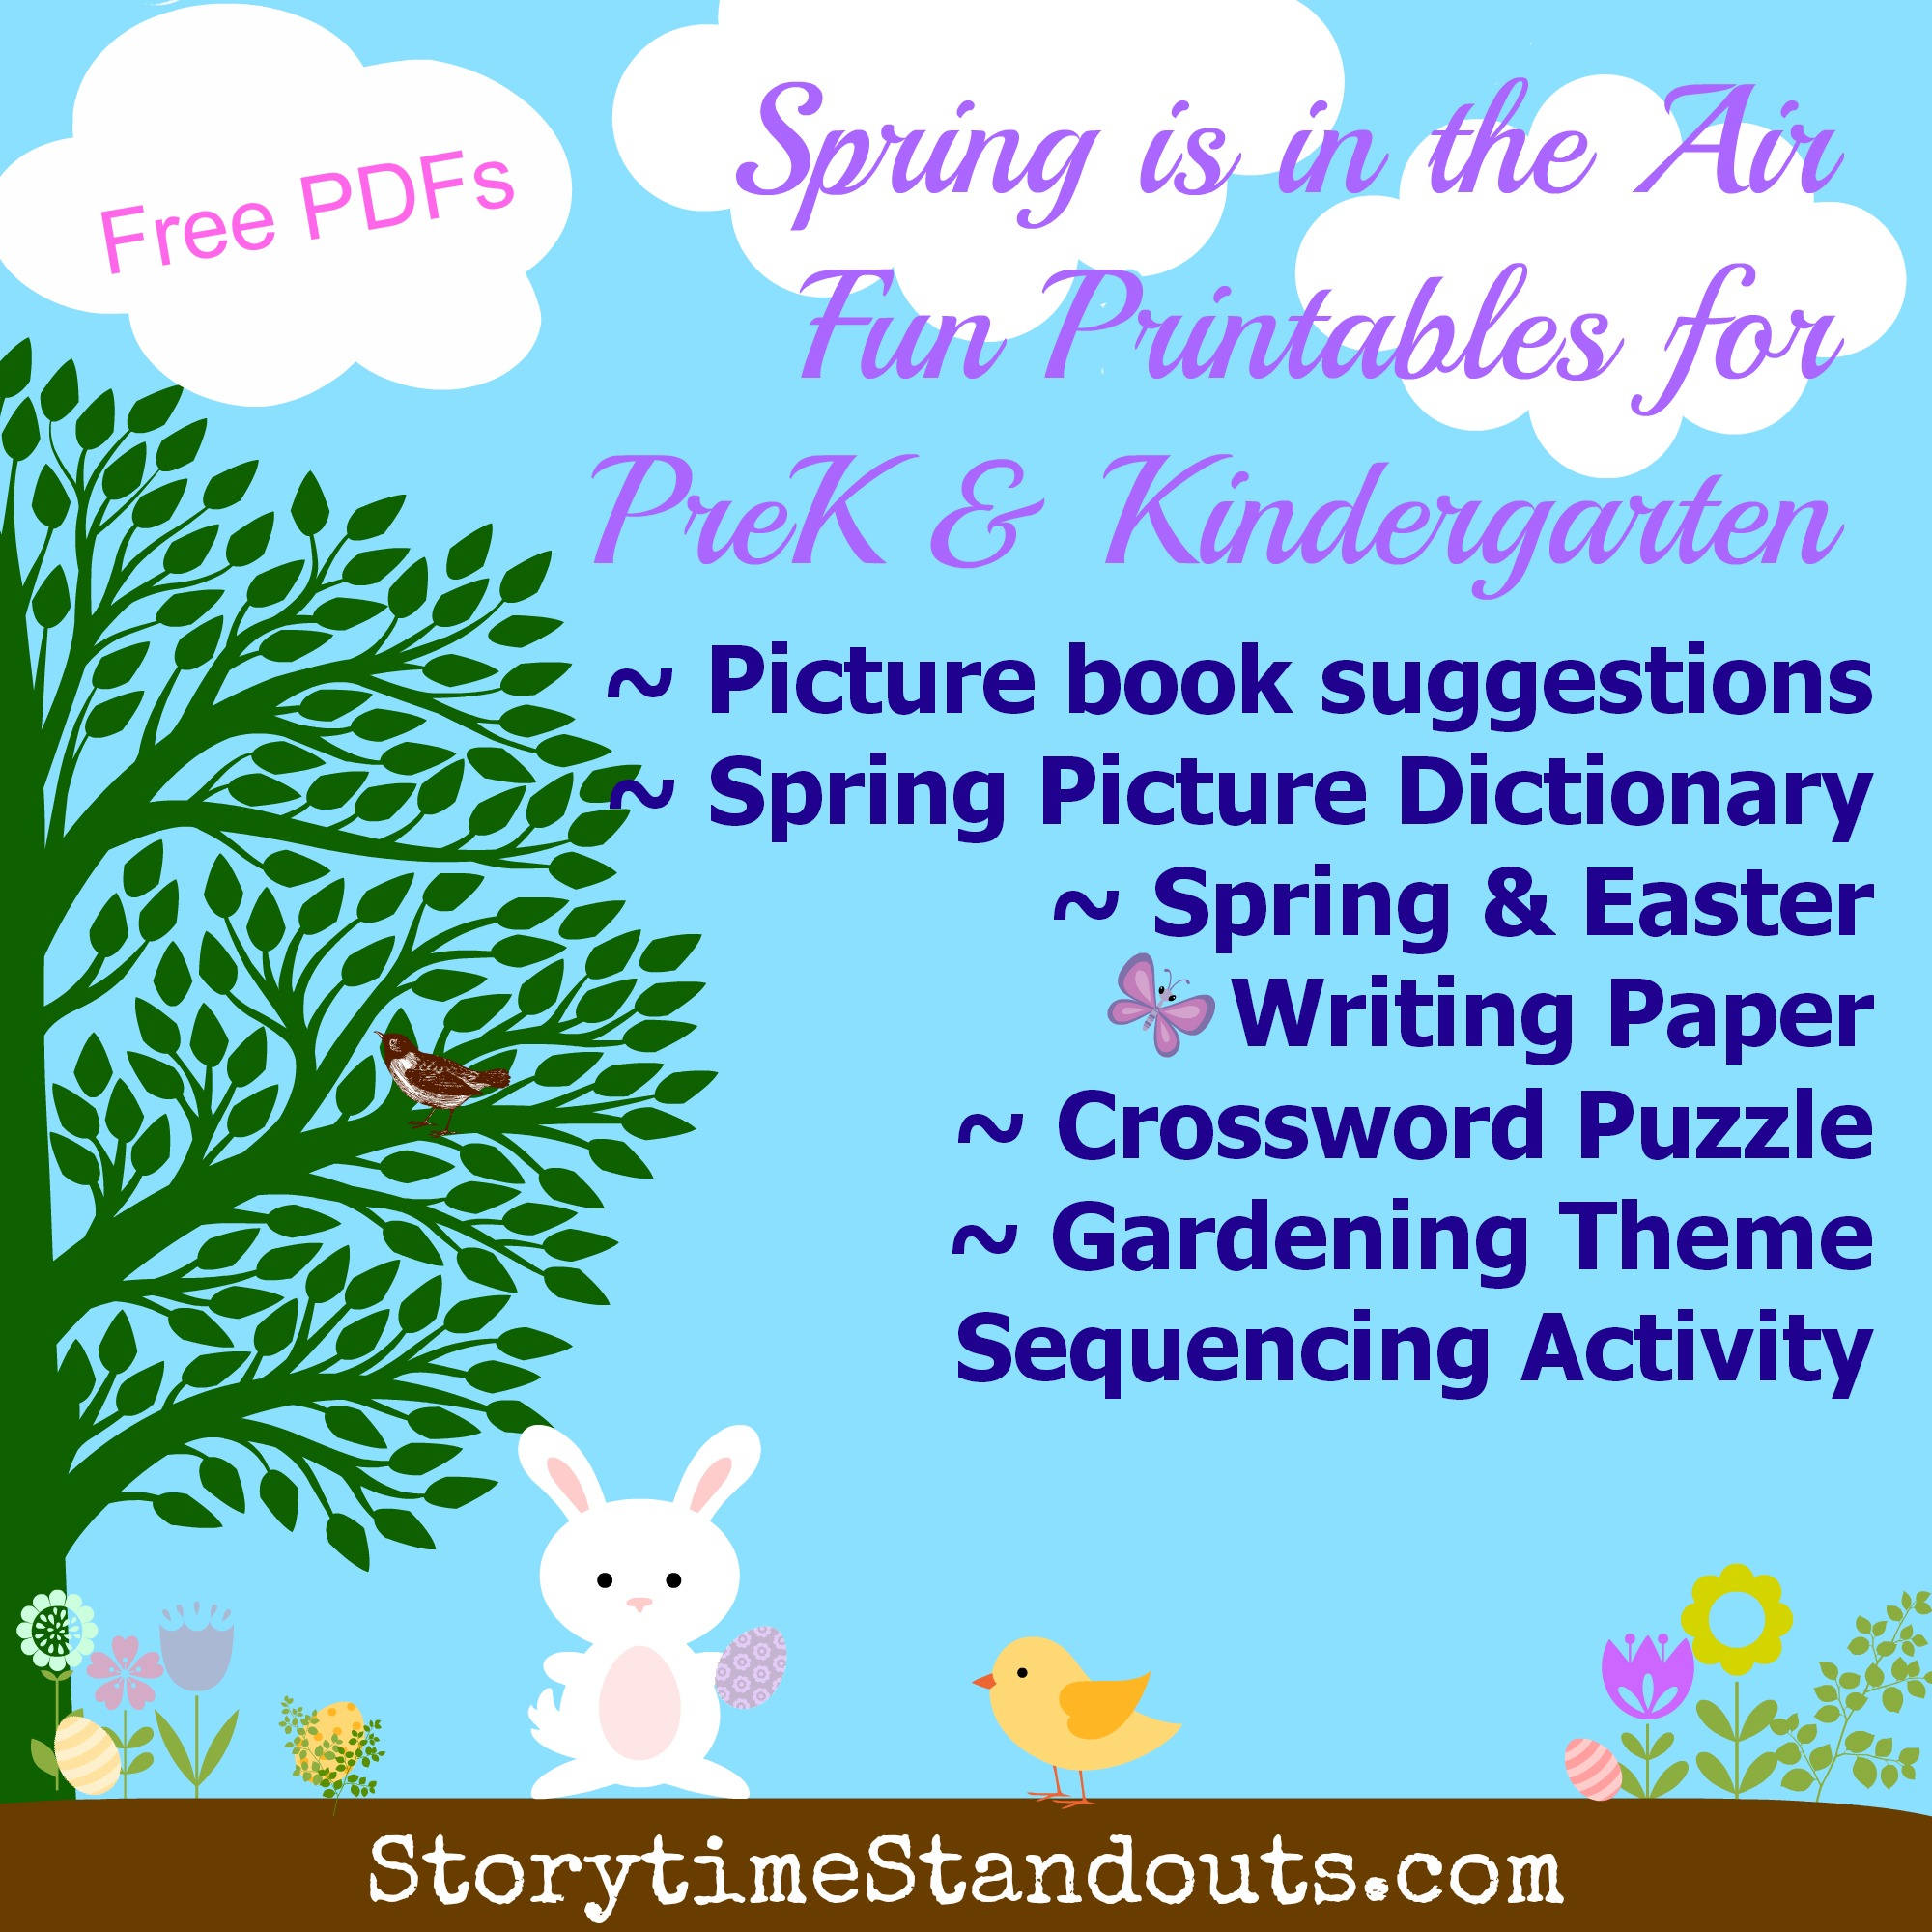 Storytime Standouts' Spring and Easter Prek kindergarten Theme Printables